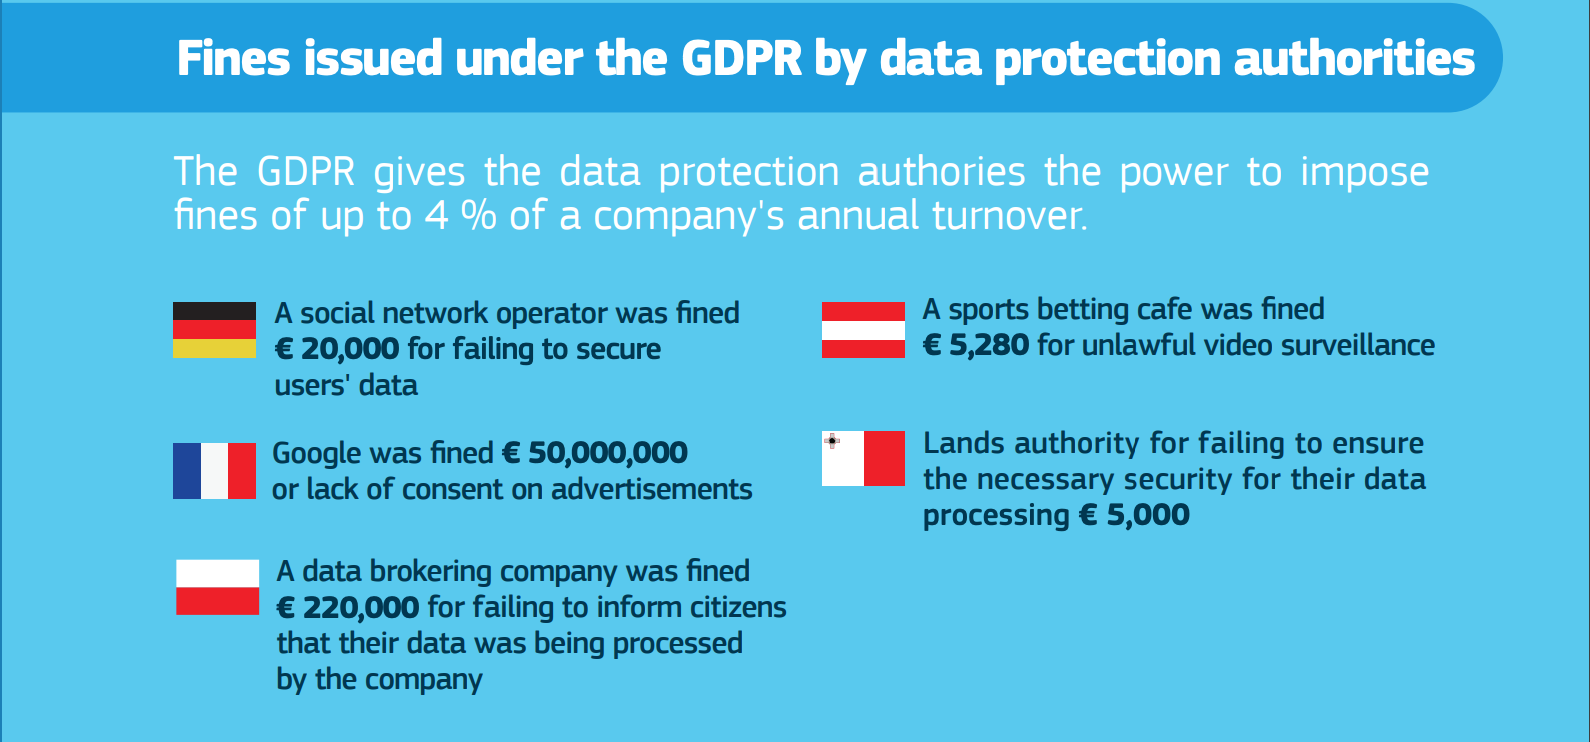 Fines issued under the GDPR by data protection authorities